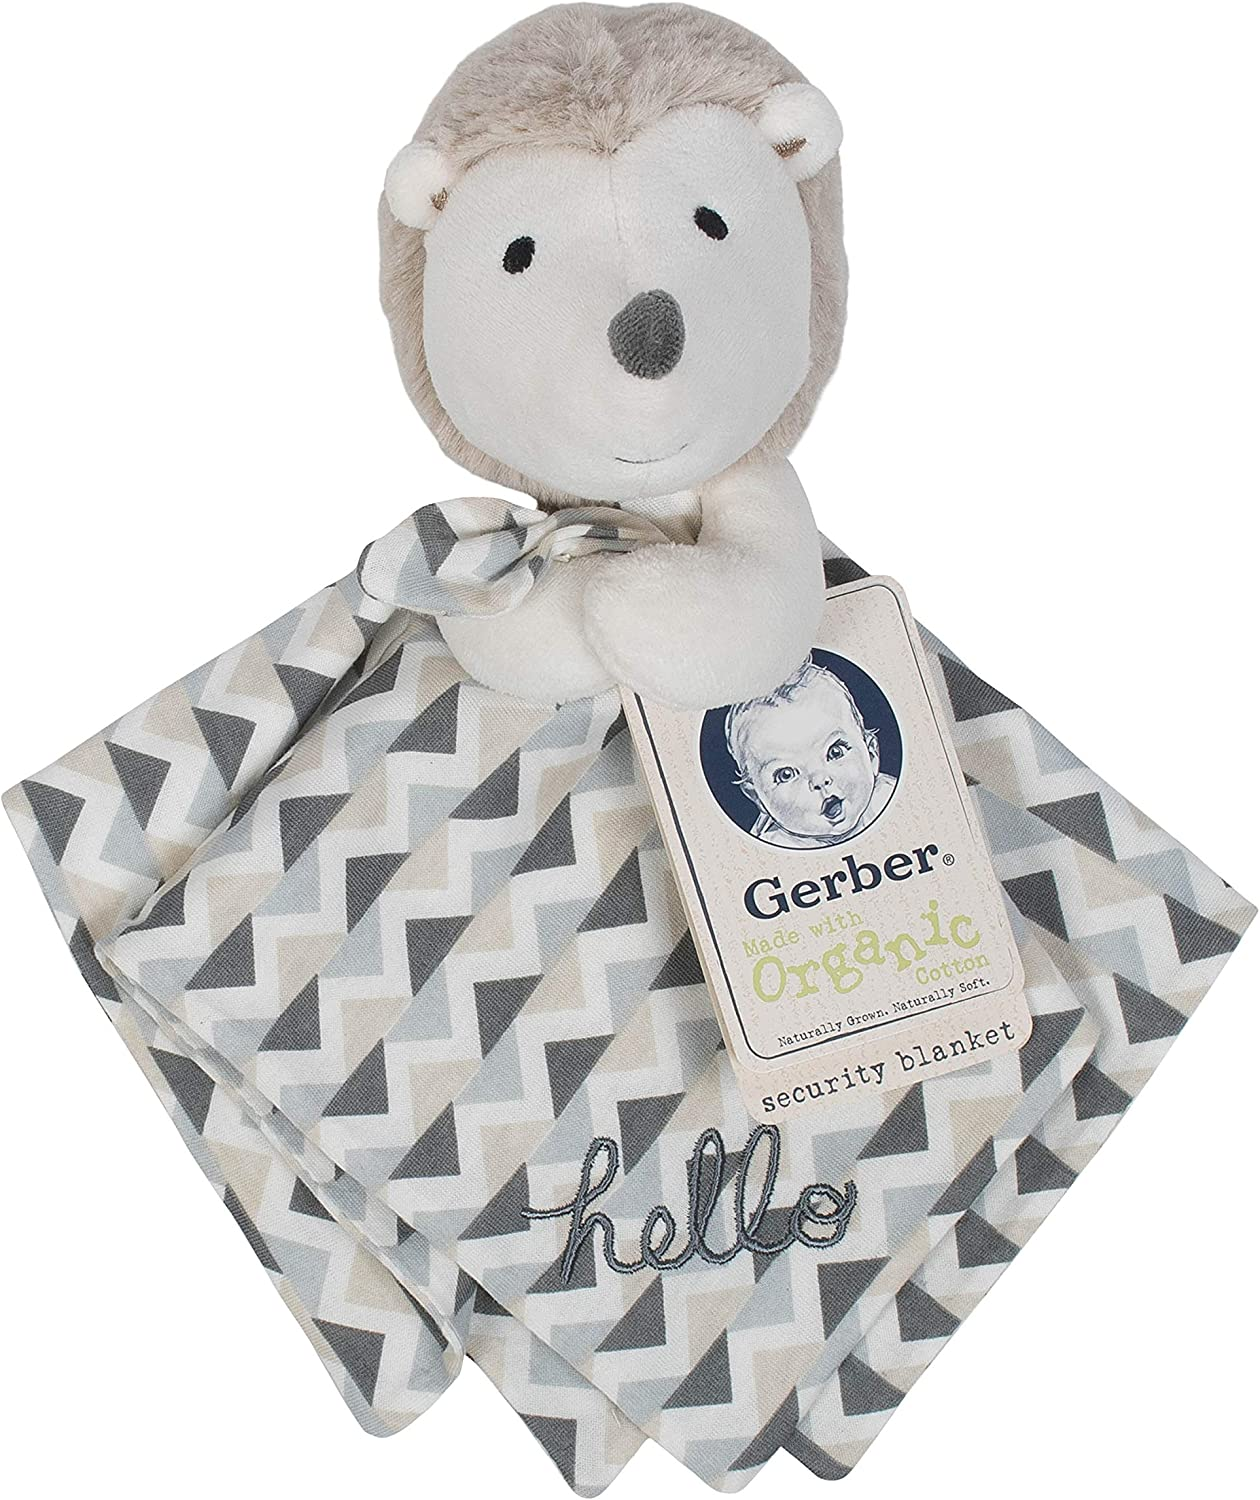 Gerber Organic Security Blanket Beige Hedgehog One Size